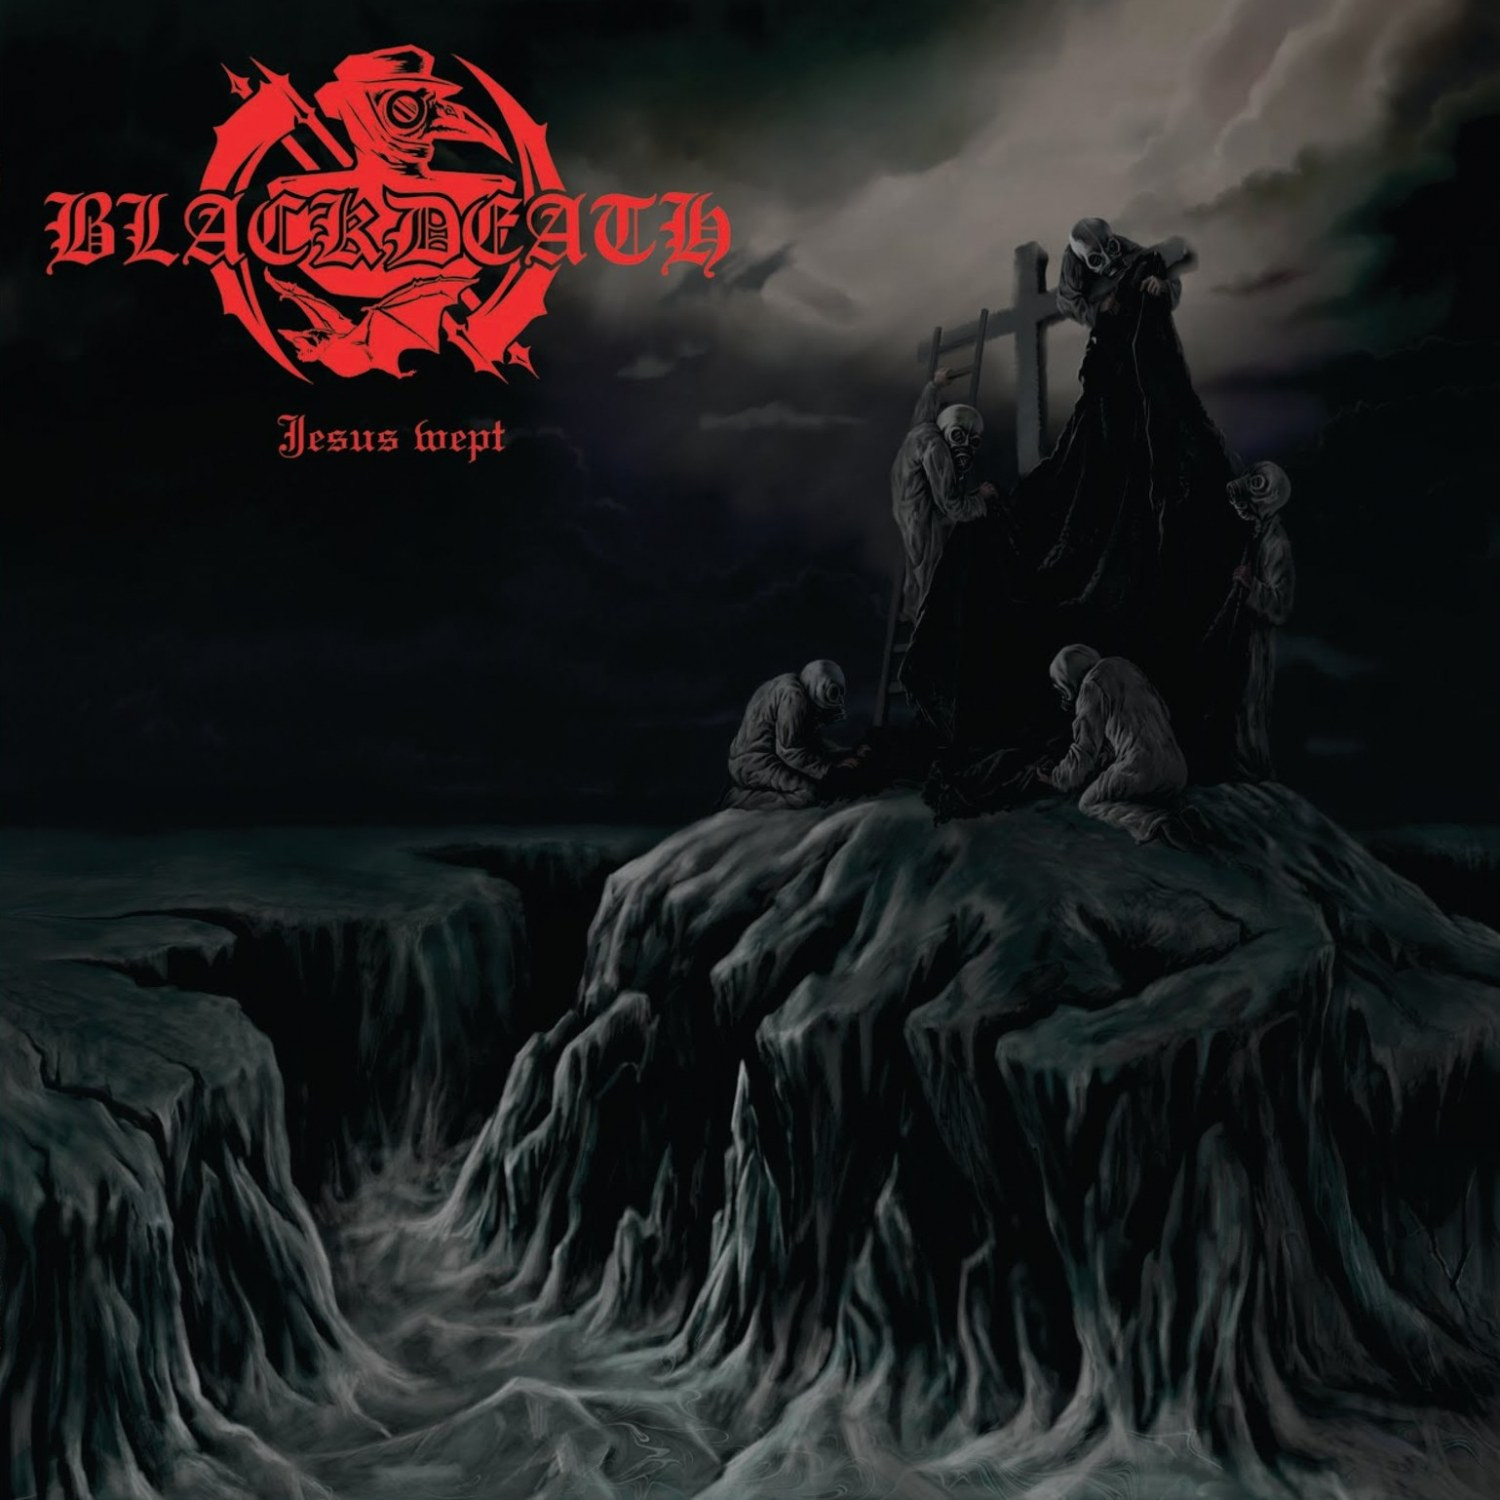 Review for Blackdeath - Jesus Wept